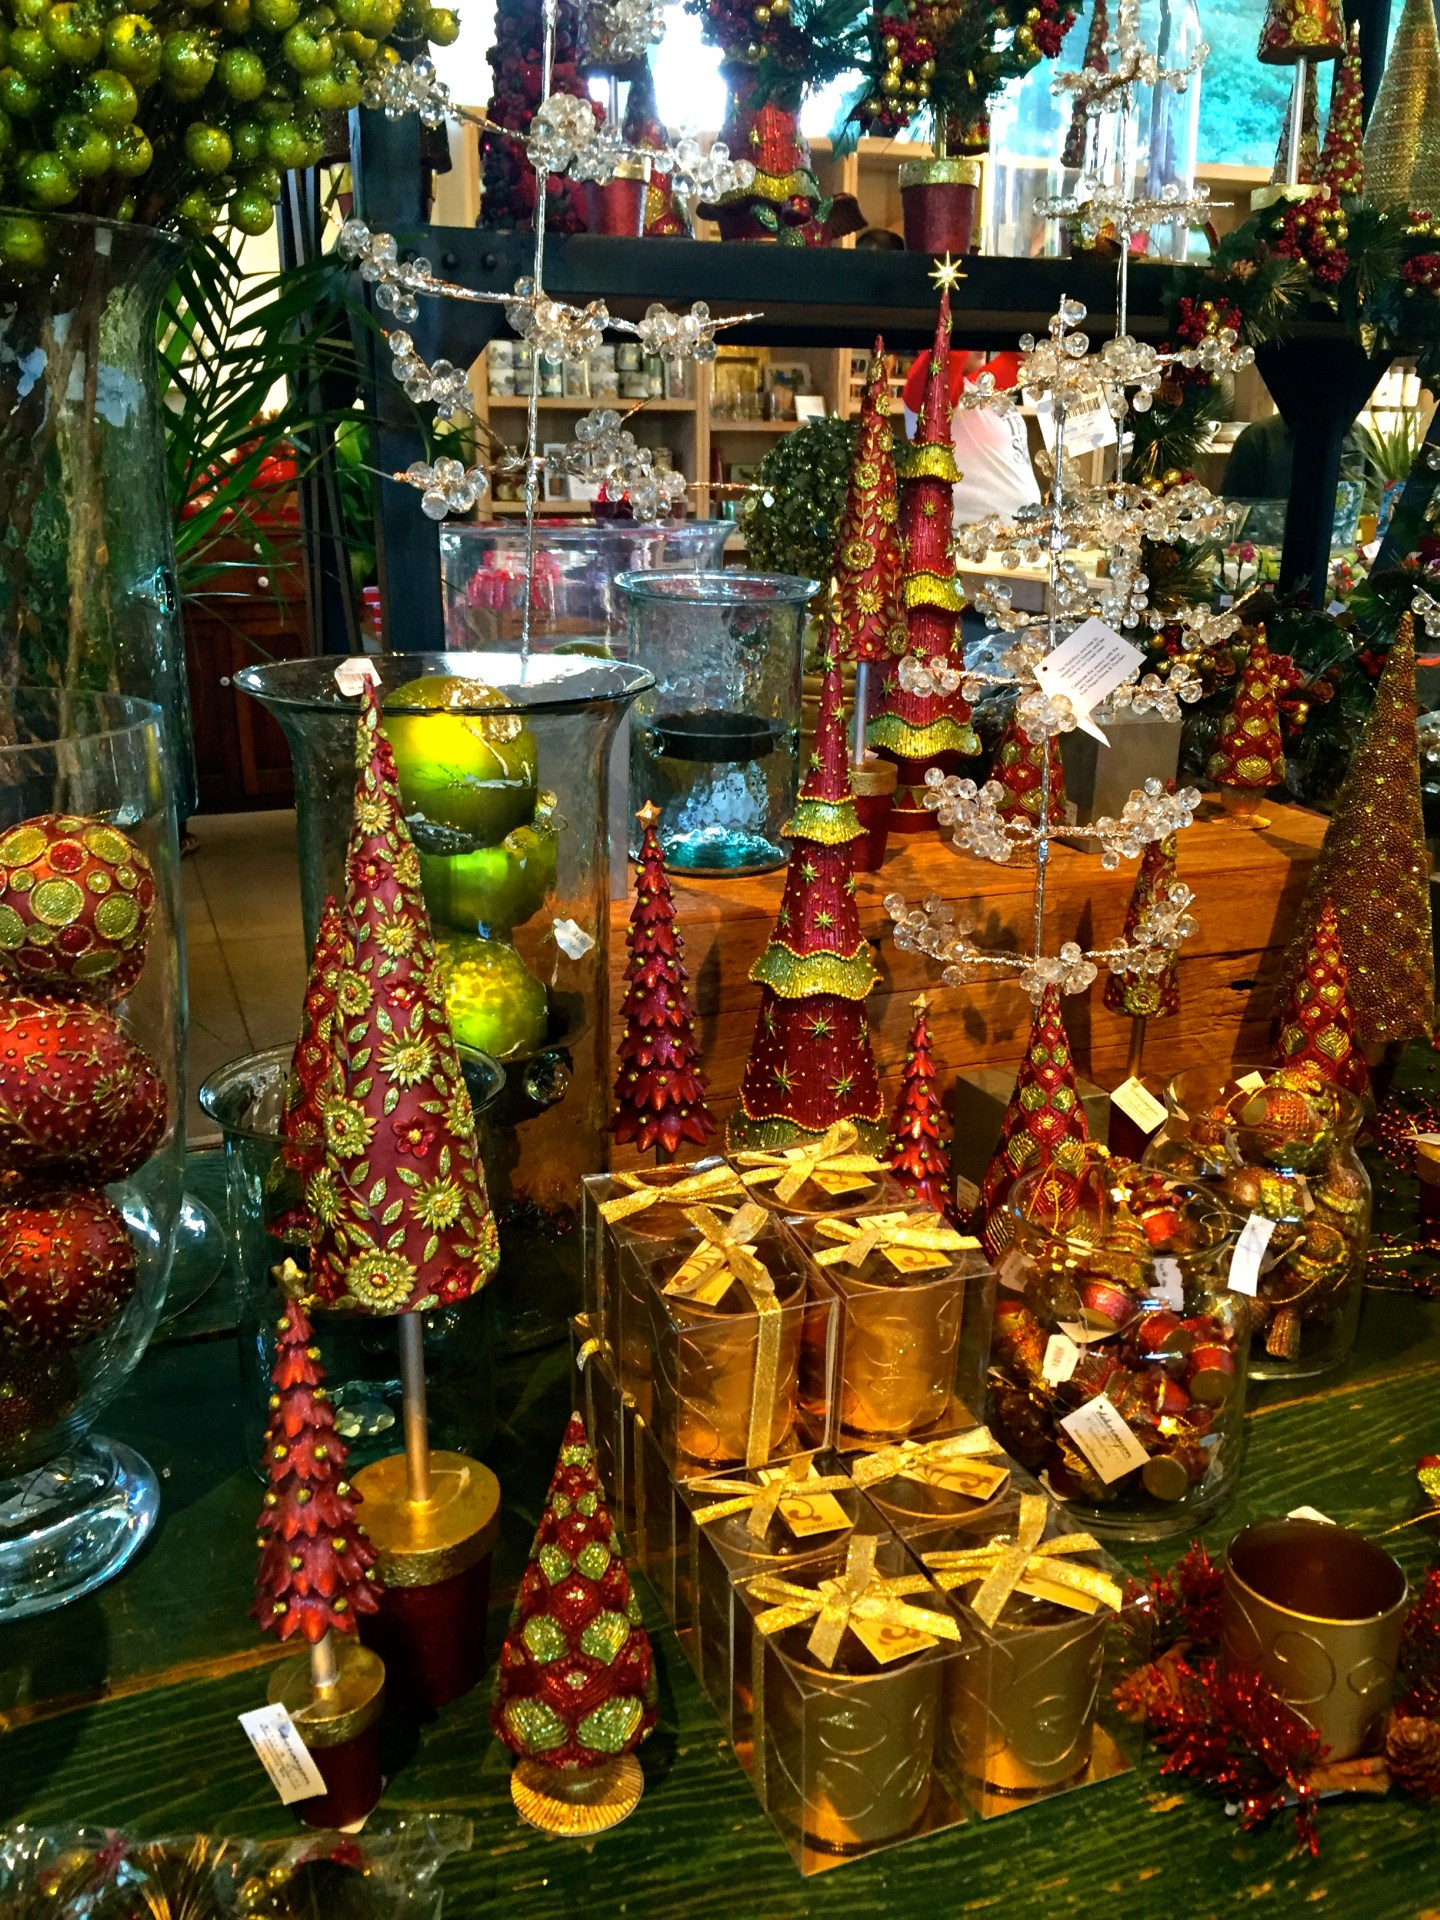 Gift store at the Holiday Train Show at the New York Botanical Garden